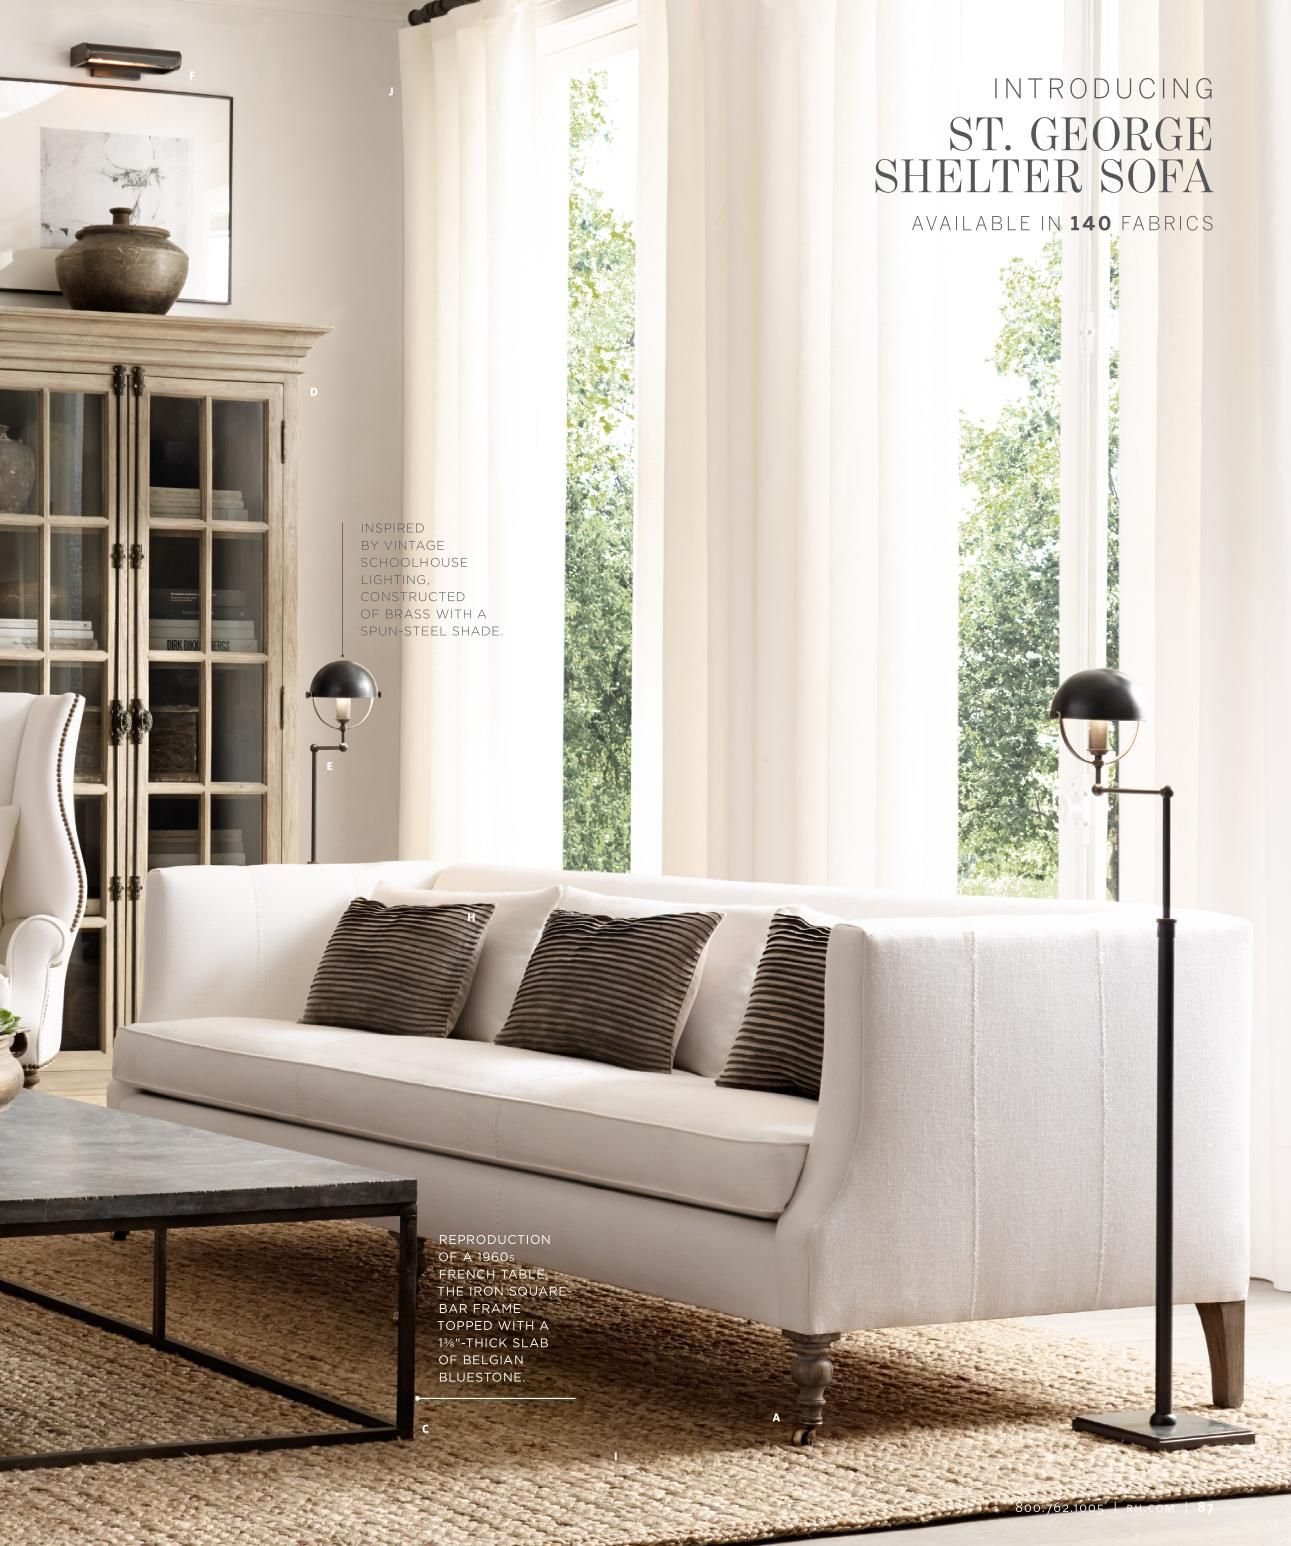 Restoration hardware decor for the home in 2019 living - Restoration hardware living room ideas ...